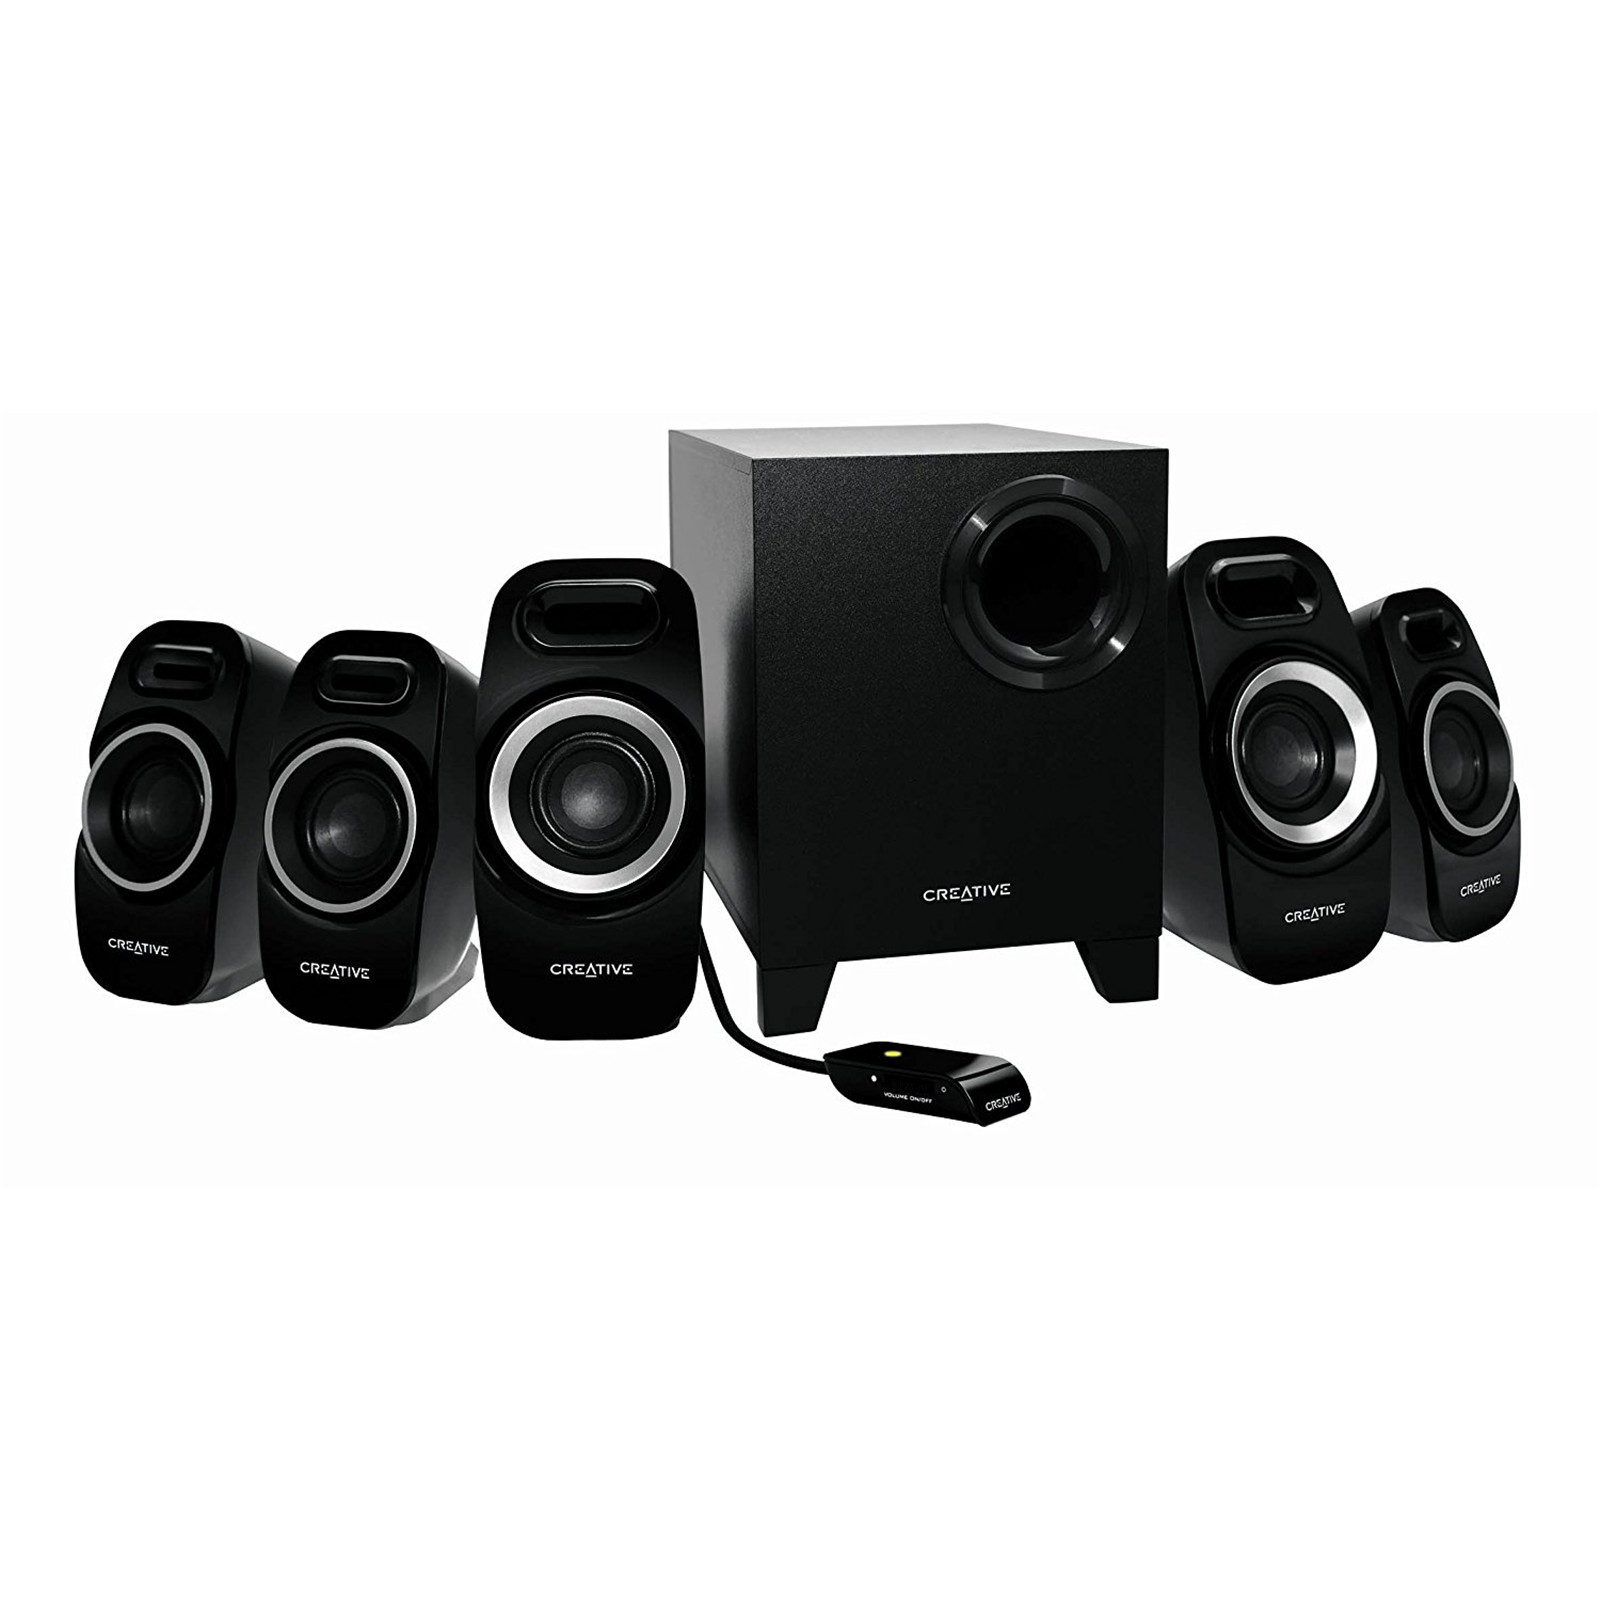 Buy the Creative Inspire T6300 51 Surround Speaker System with